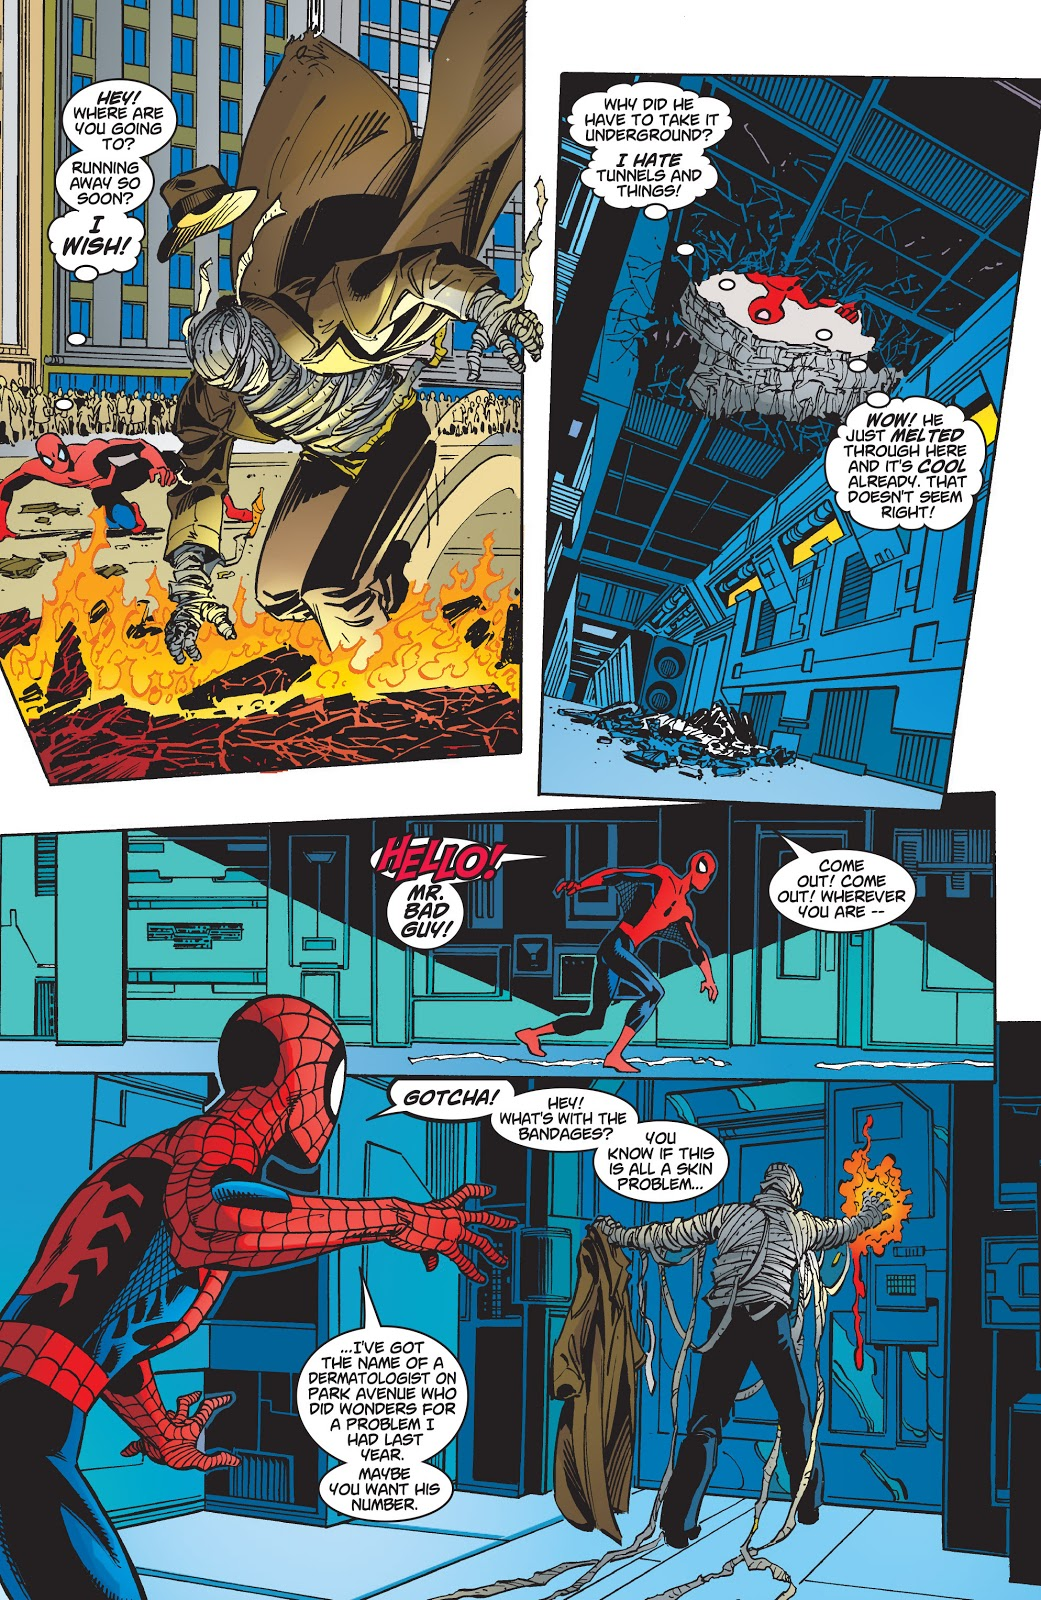 Spider-Man (Martha Franklin) VS Shadrac